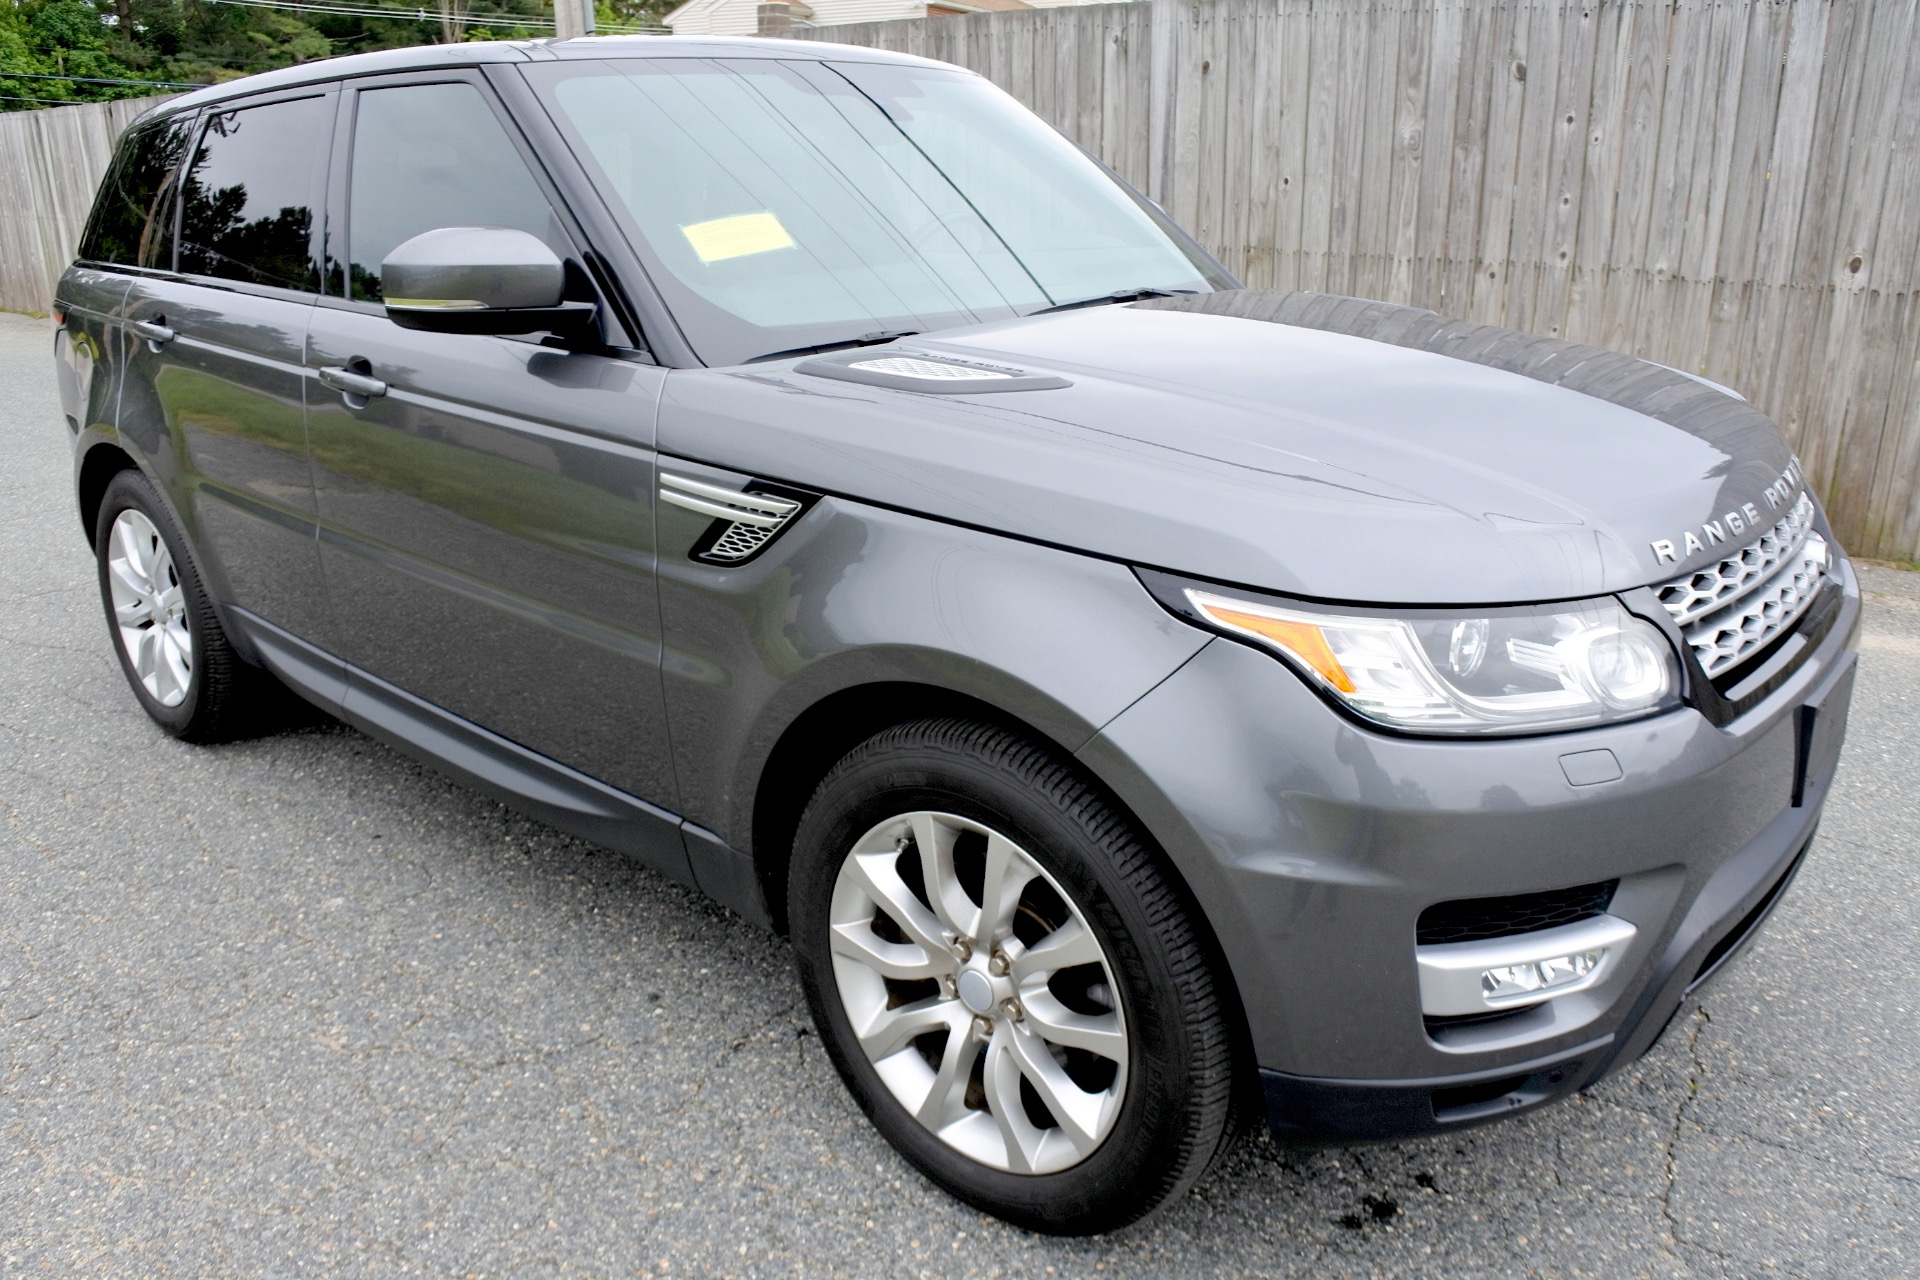 Used 2015 Land Rover Range Rover Sport HSE Used 2015 Land Rover Range Rover Sport HSE for sale  at Metro West Motorcars LLC in Shrewsbury MA 7